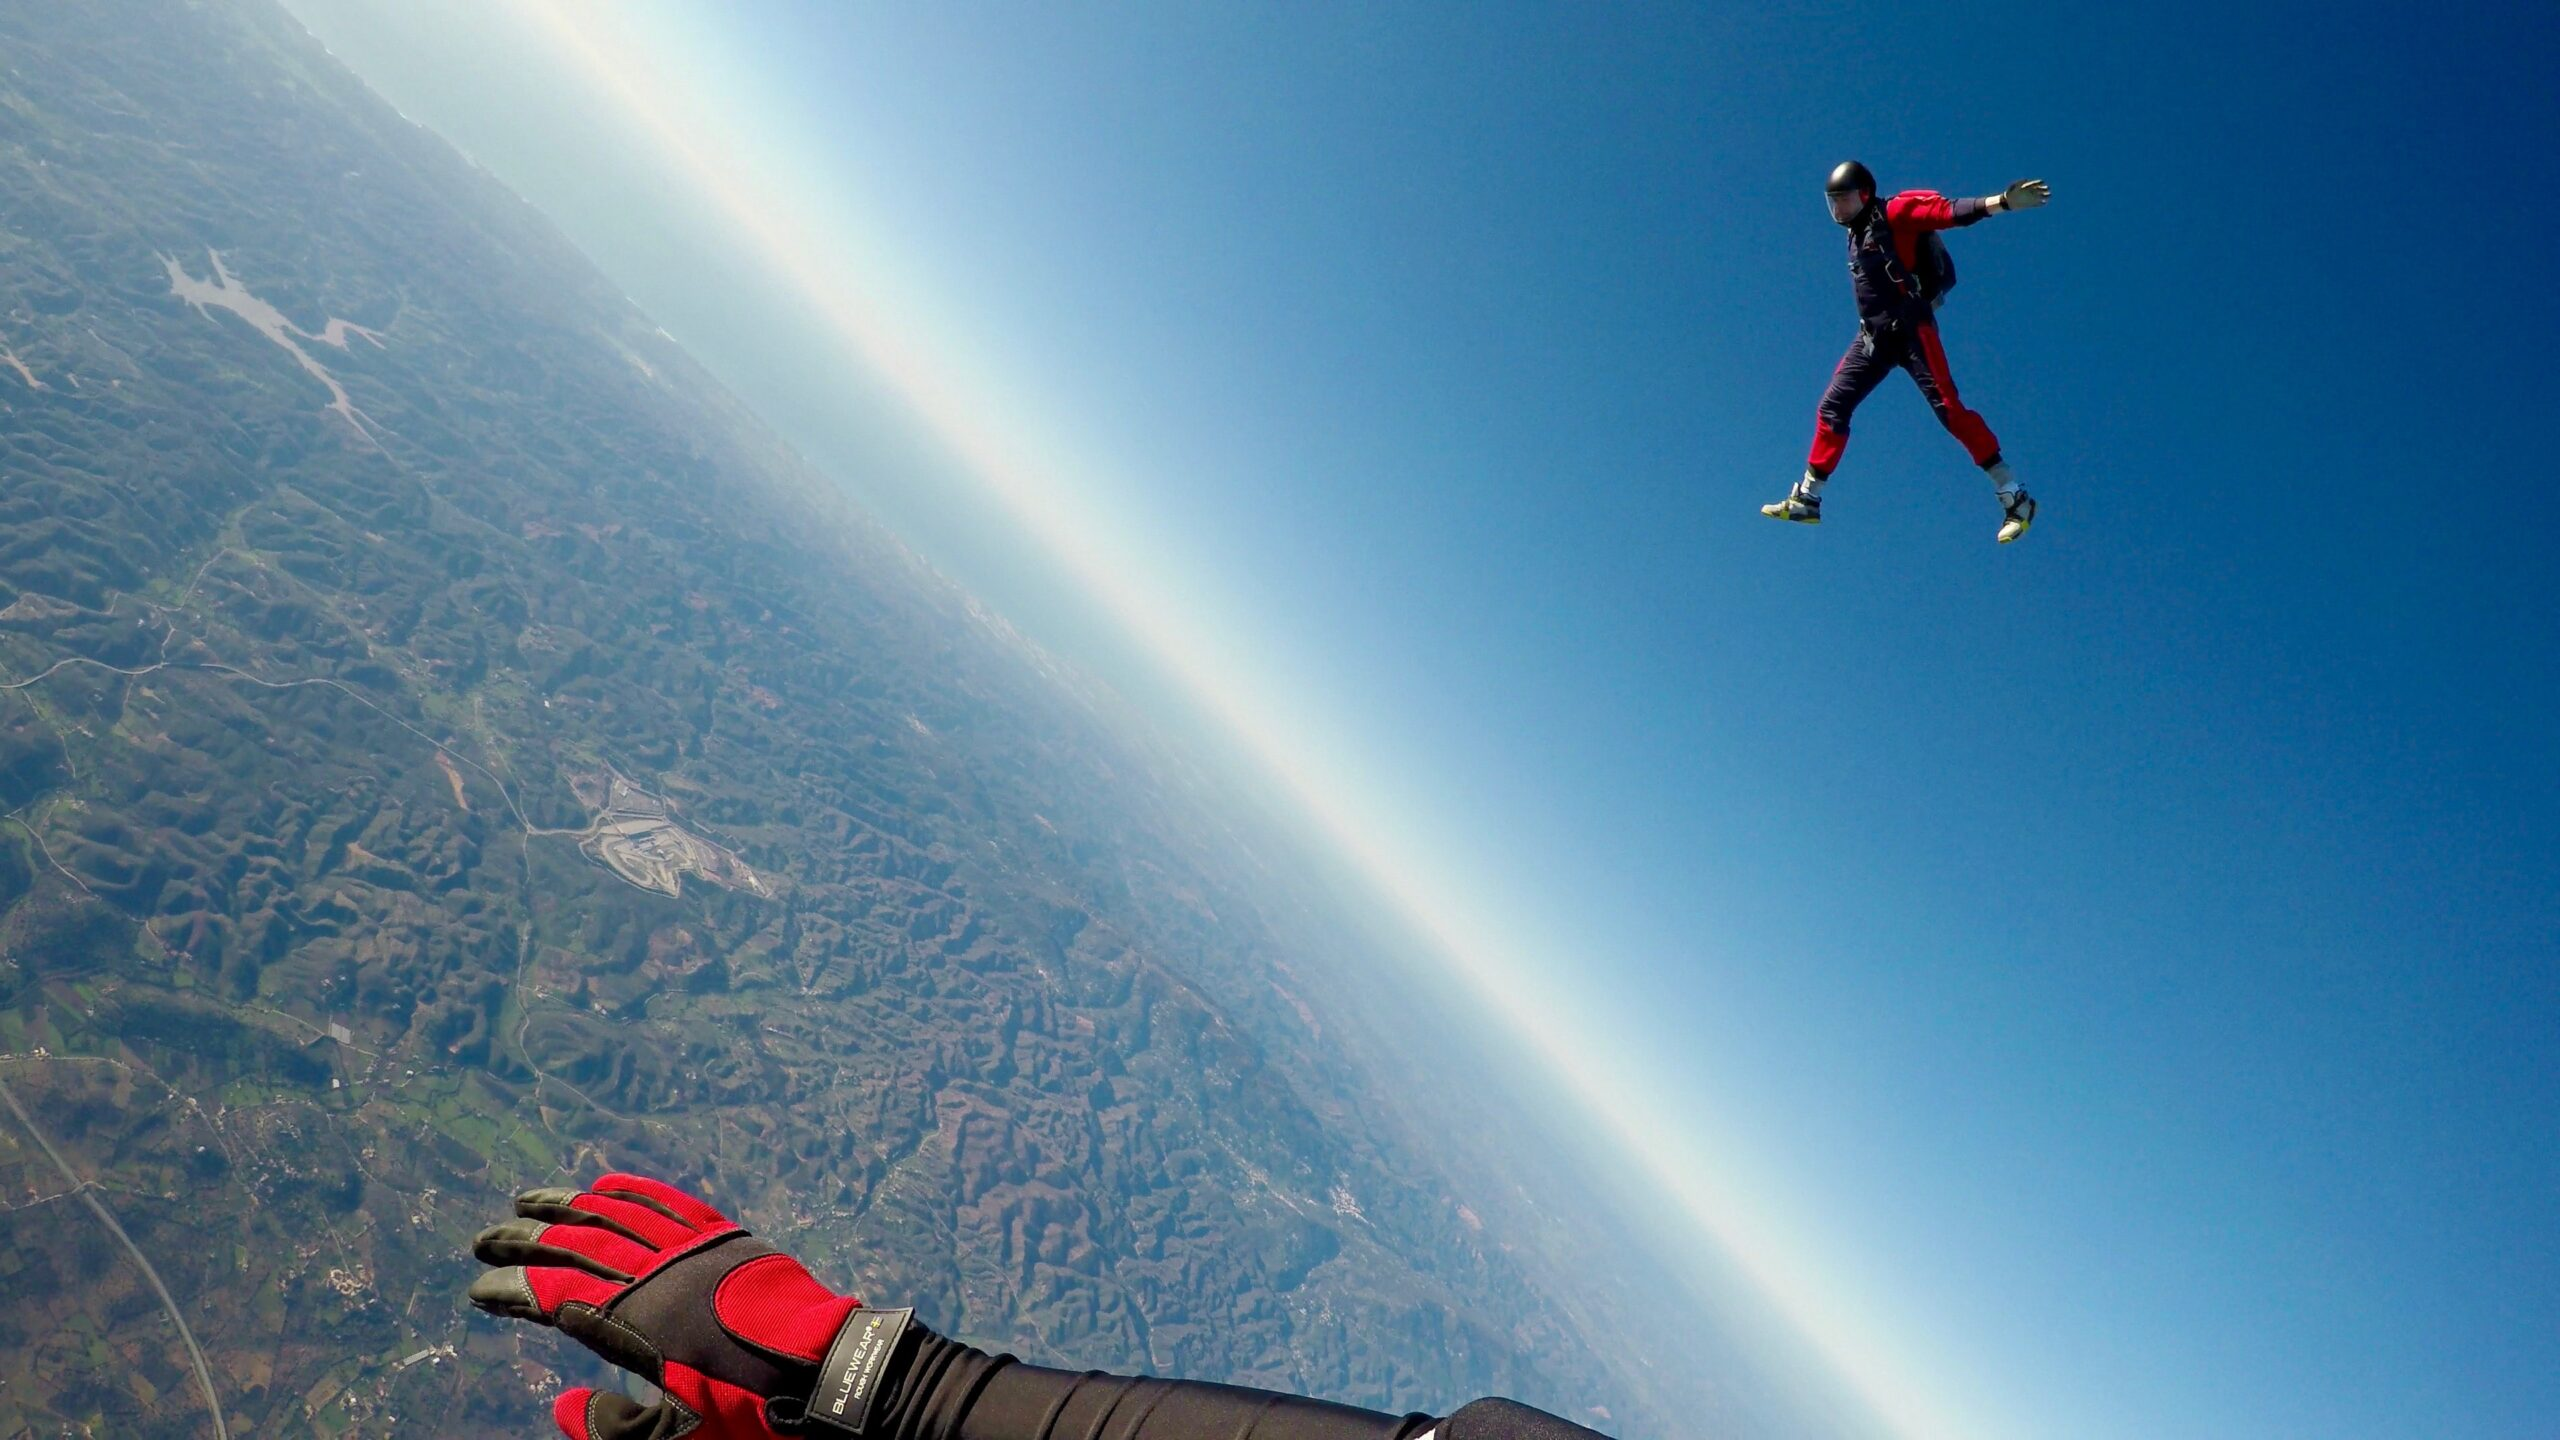 Free Fall With A Skydiving Lesson In California